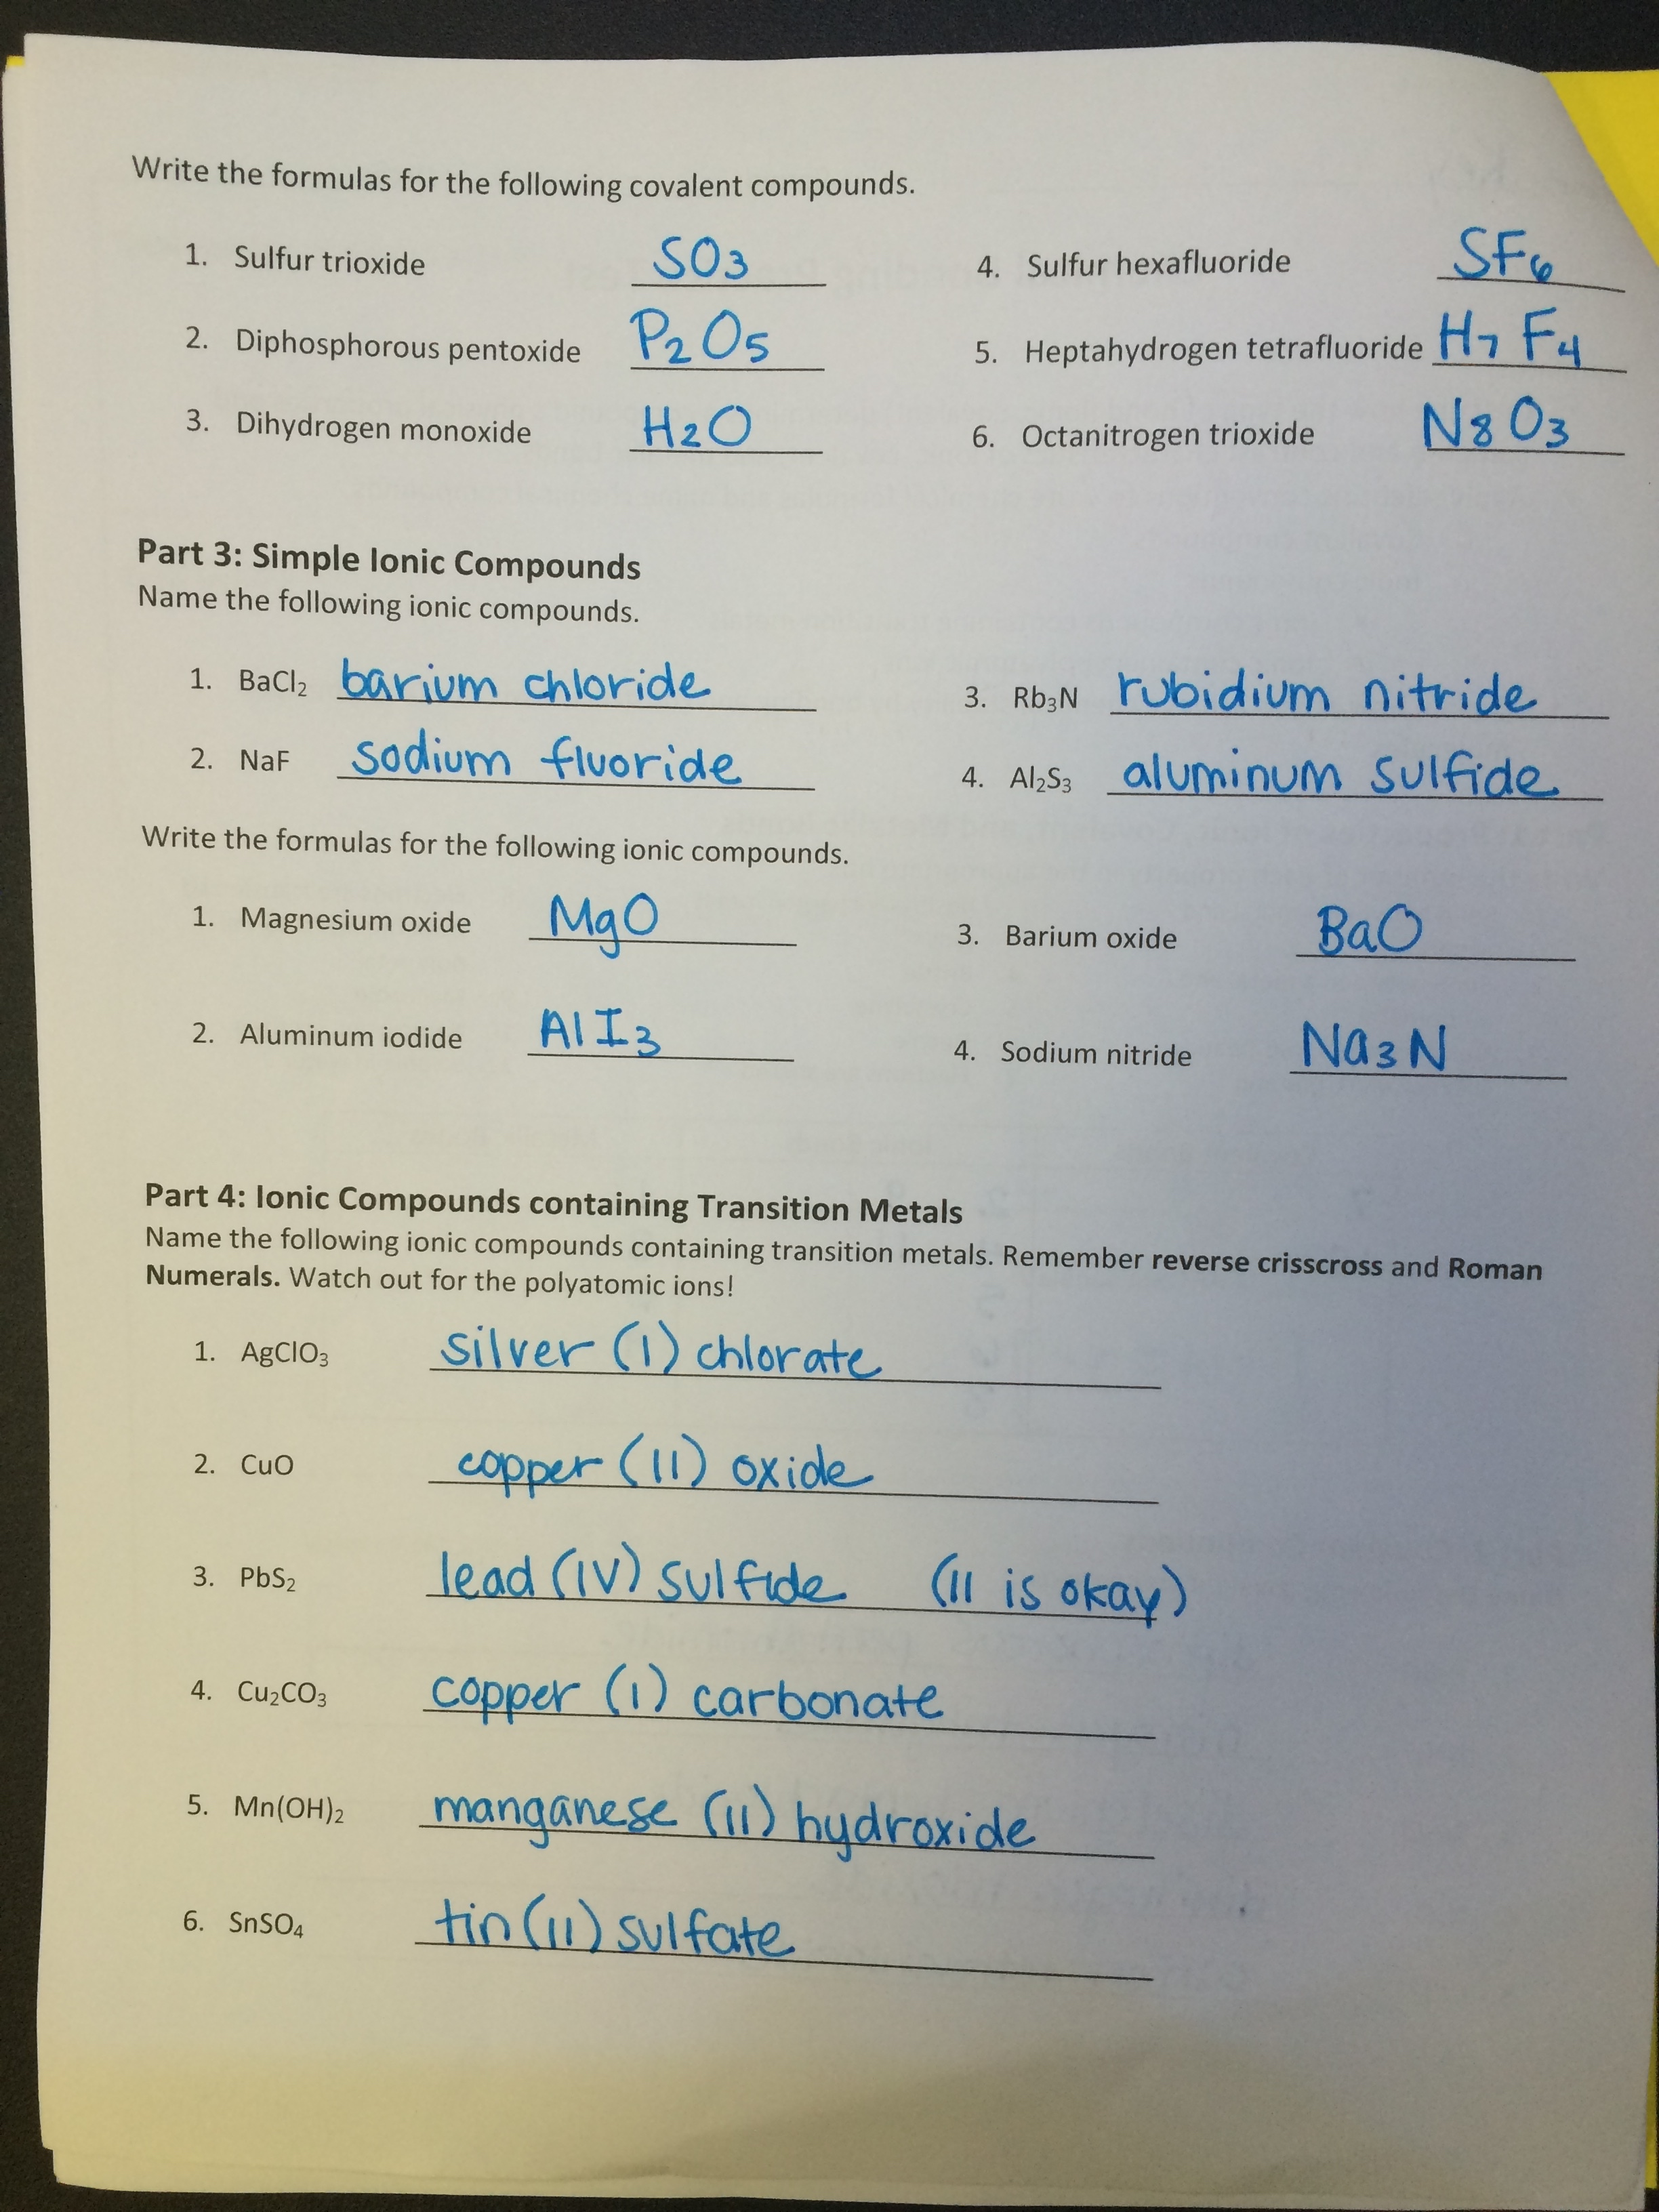 major assignments ms eggleston s chemistry class posted in chemistry homework major assignments leave a reply